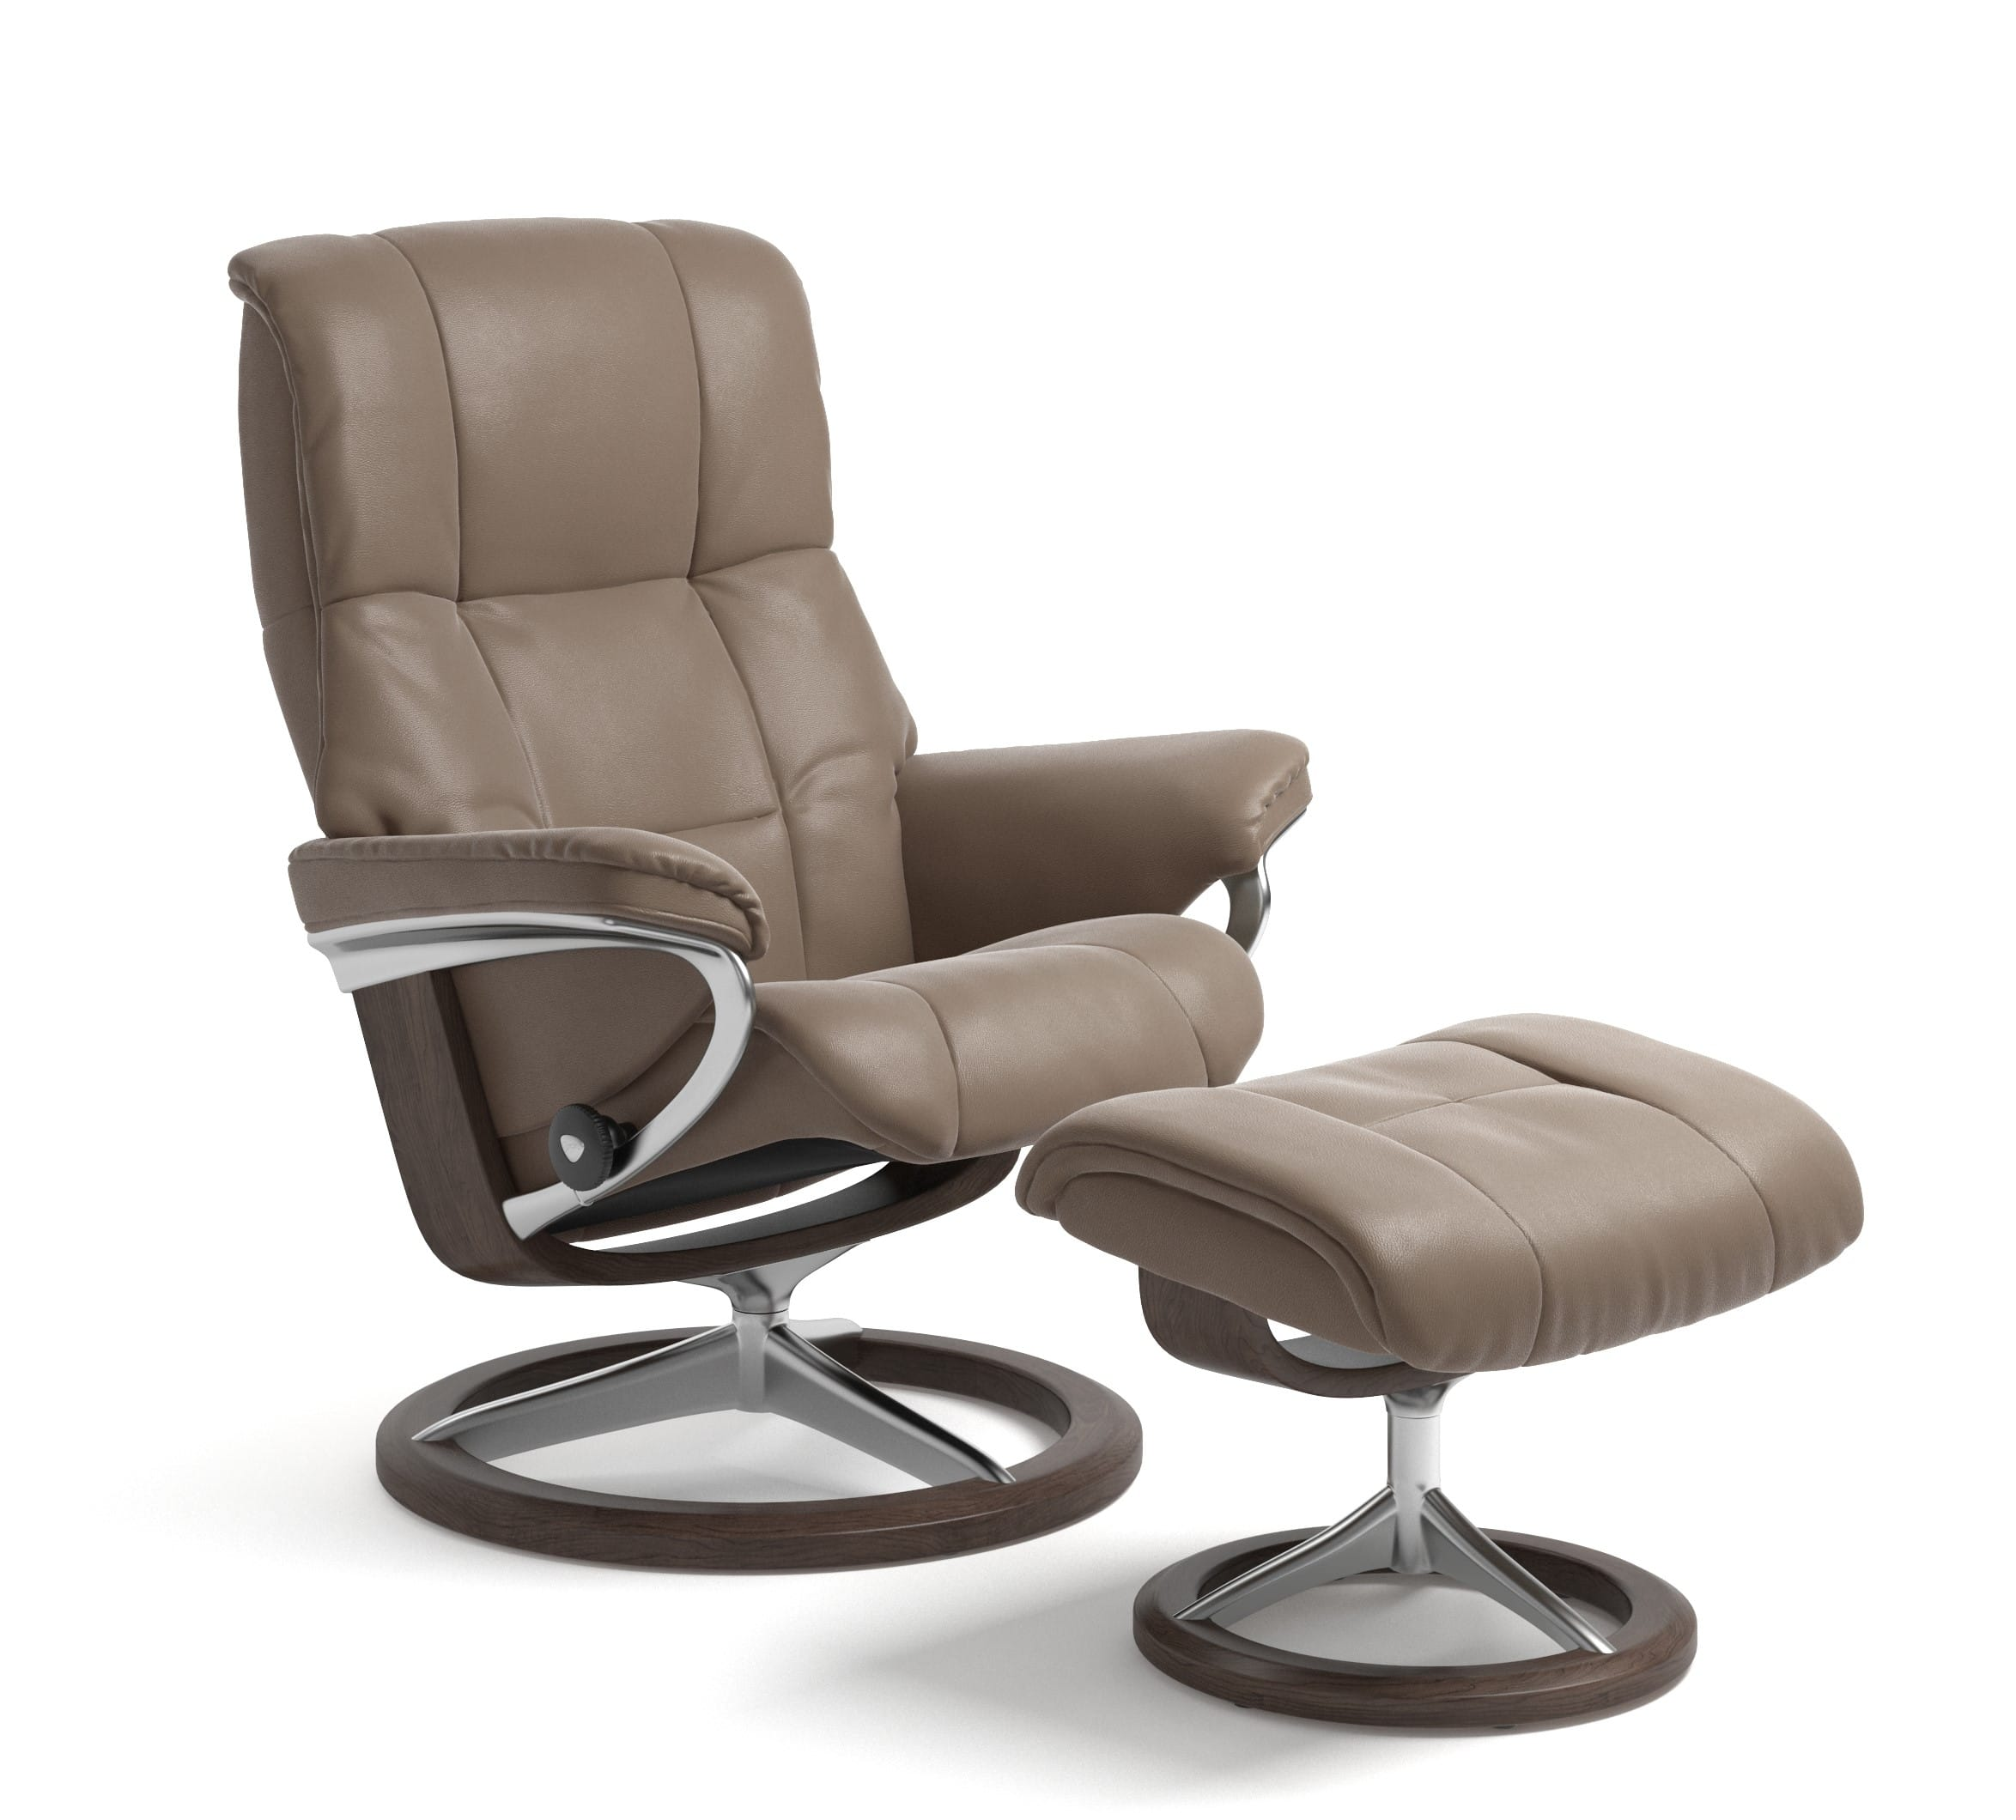 Stressless Mayfair Signature 1